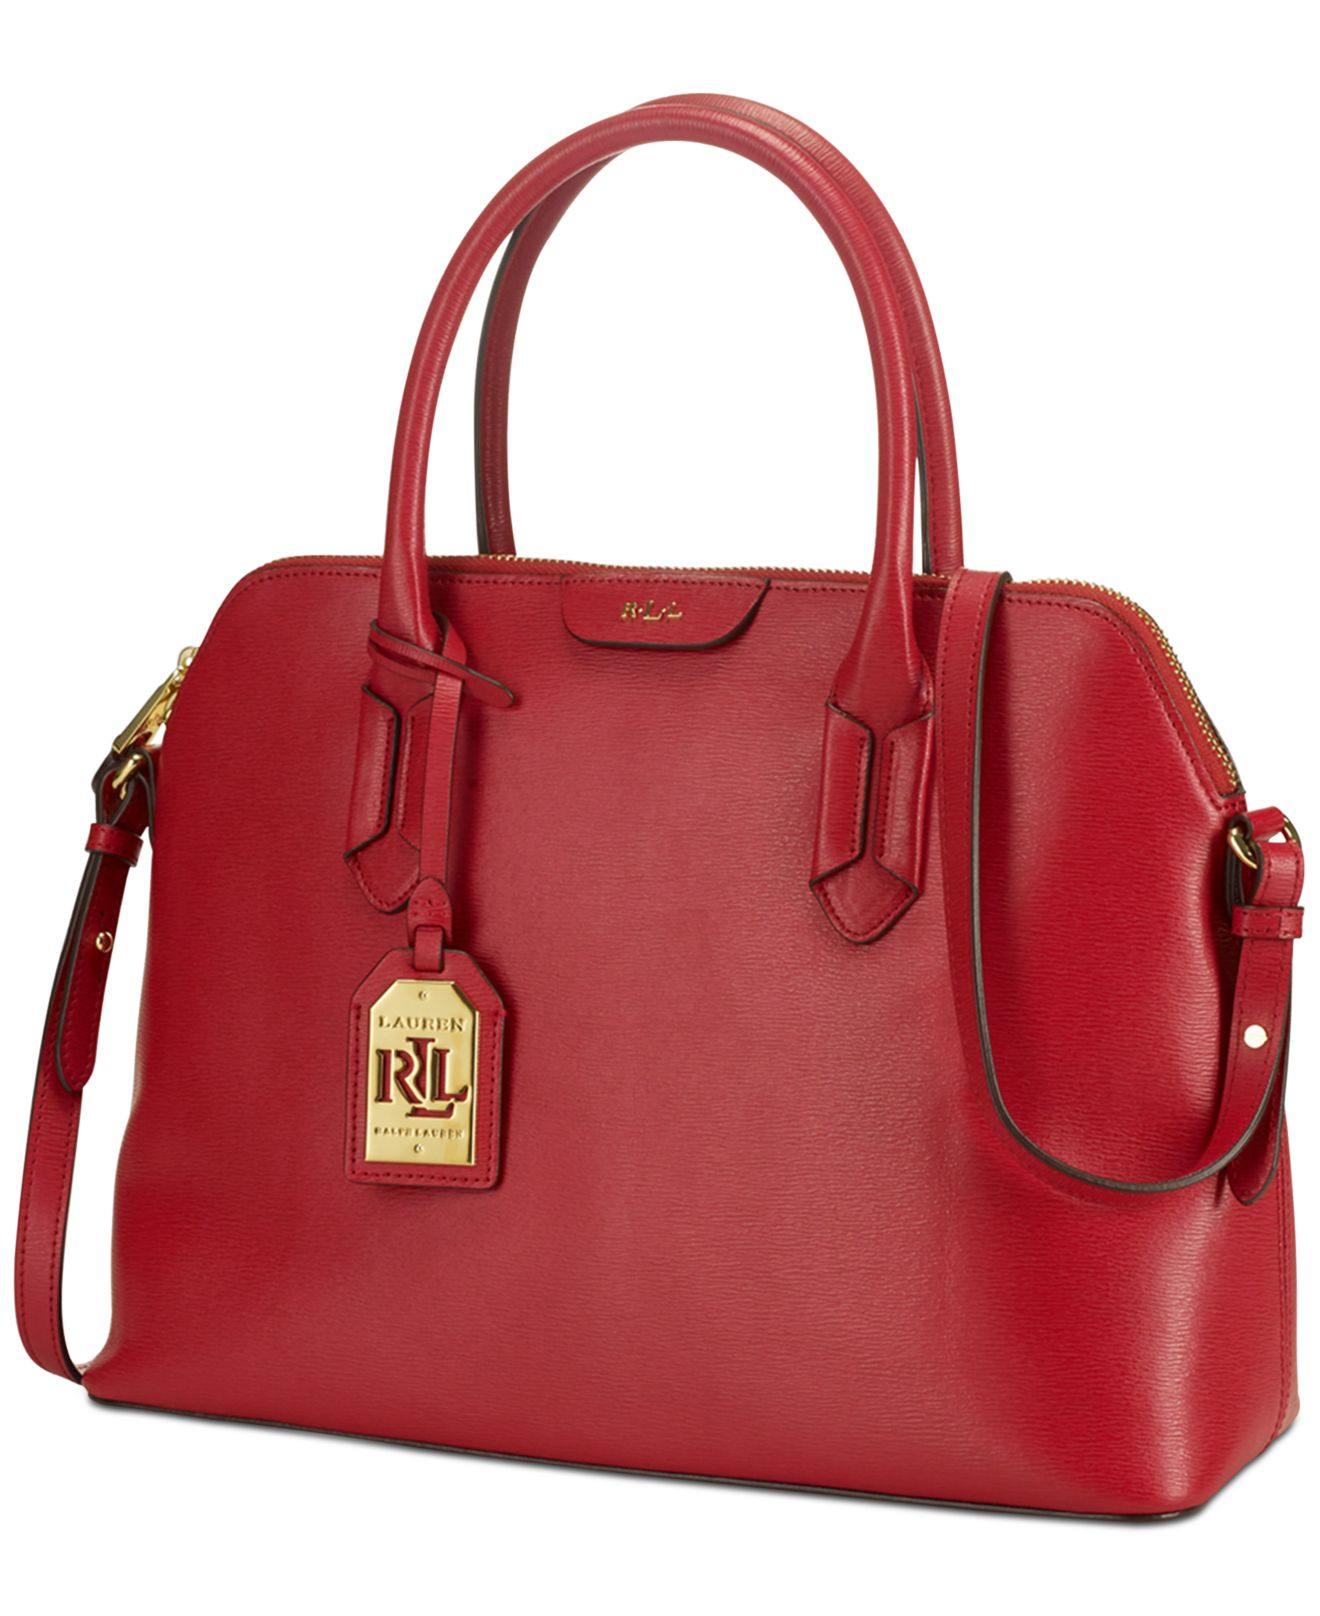 Ralph Lauren Tate Dome Satchel Laukku : Lauren by ralph tate dome satchel in red cocoa